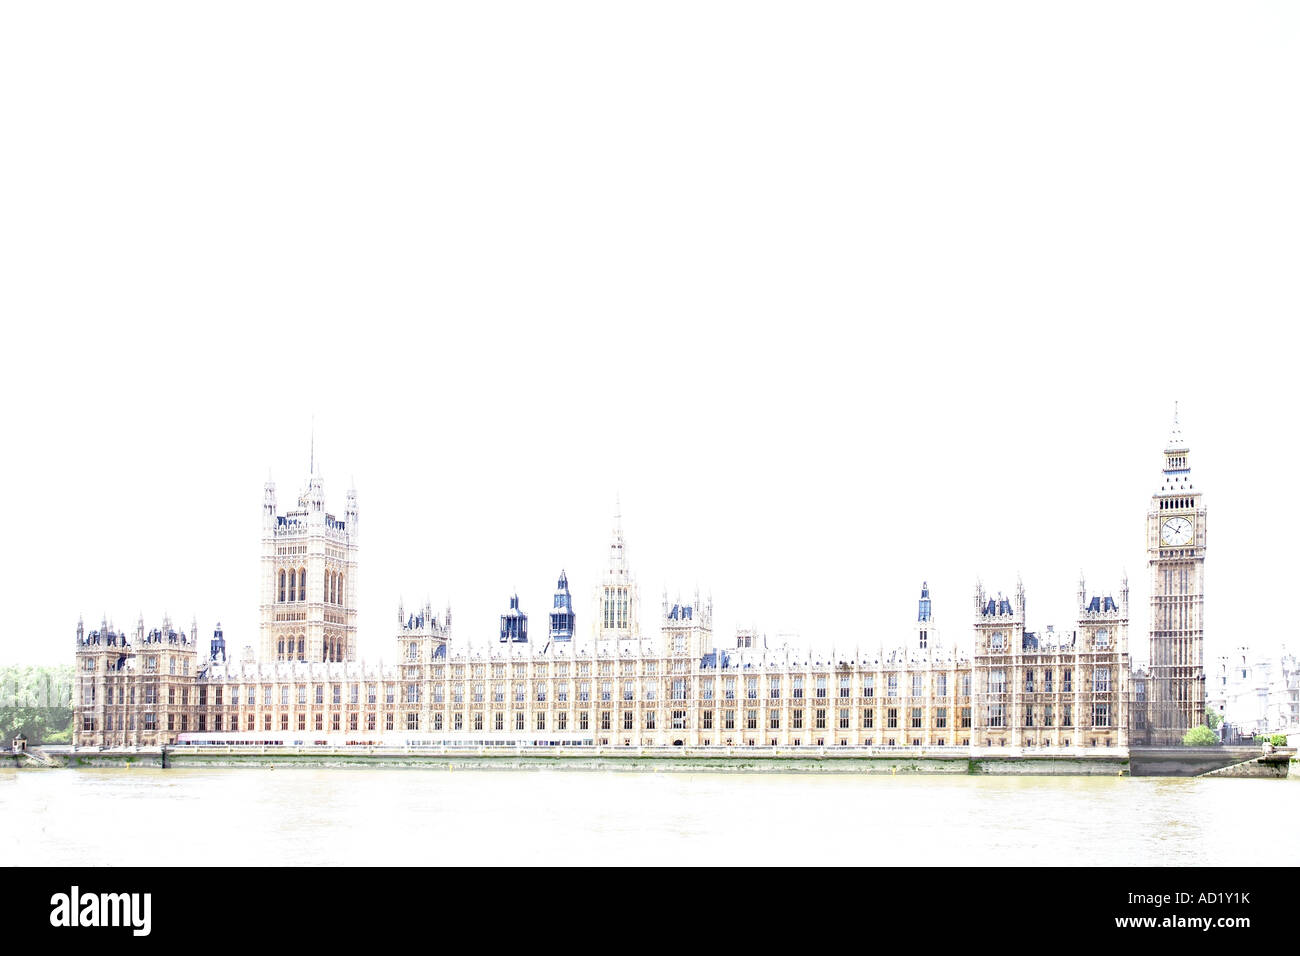 Houses of Parliament in stylised overexposure. Westminster, London, England, UK - Stock Image